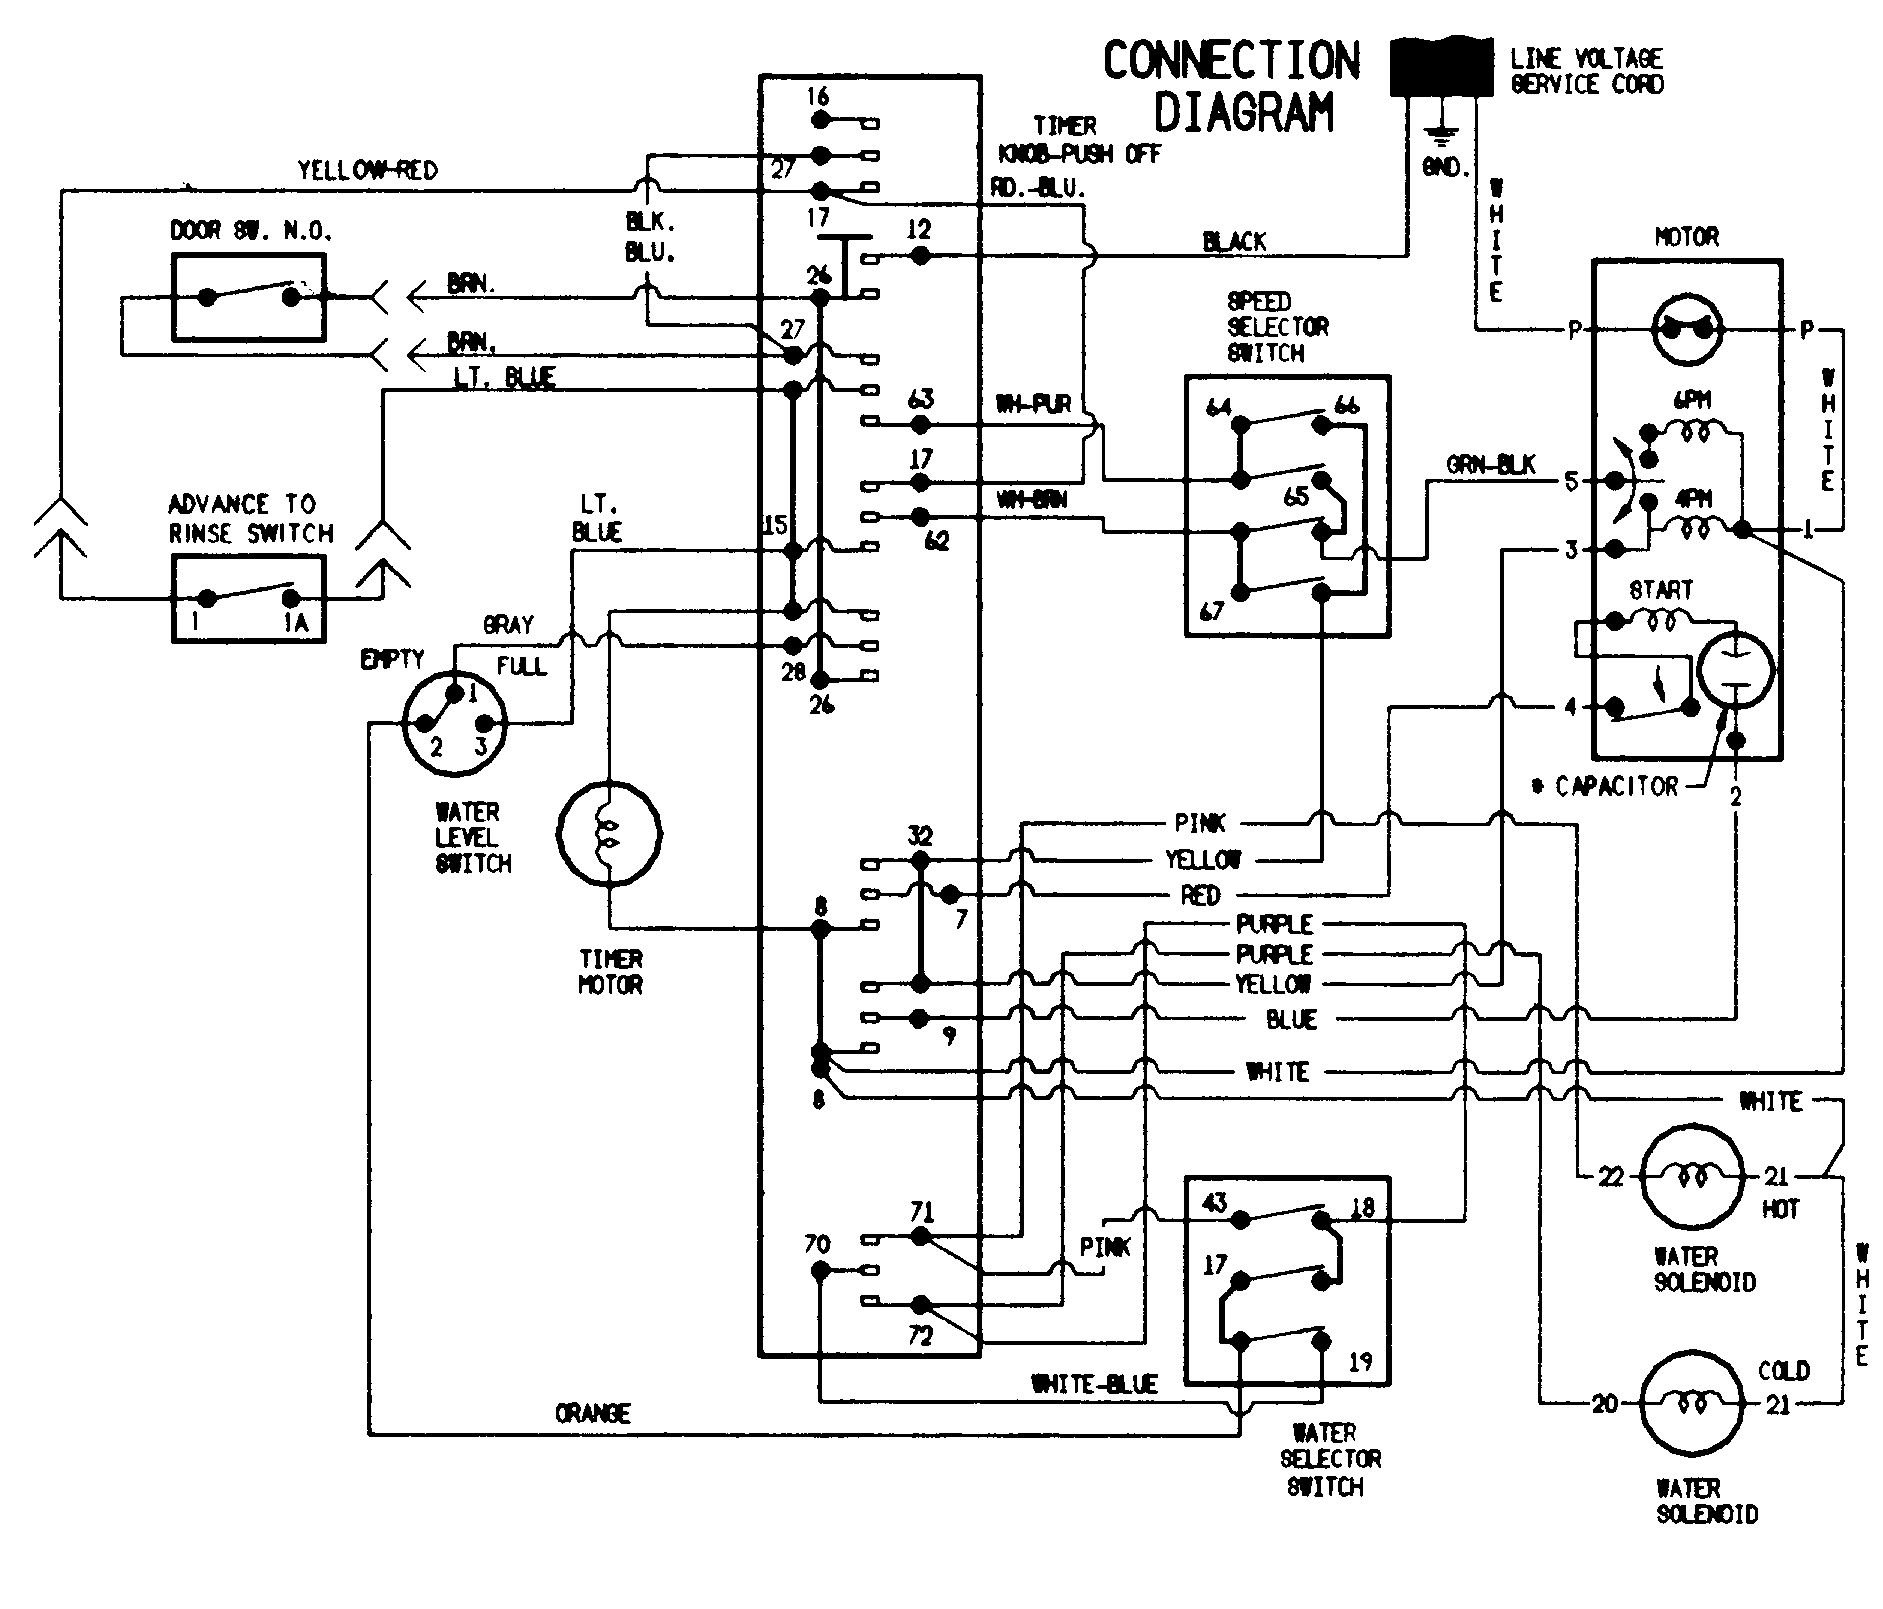 lg washing machine parts diagram with Index on Ice Maker In Refrigerator Wiring Diagram likewise Washing Machine Or Washer Dryer Is Not Spinning Draining How To Fix additionally 6h30w Samsung Dishwasher Model Xxxxx When Put further Whirlpool Ice Machine Wiring Diagram additionally Ct70 Wiring Diagrams.